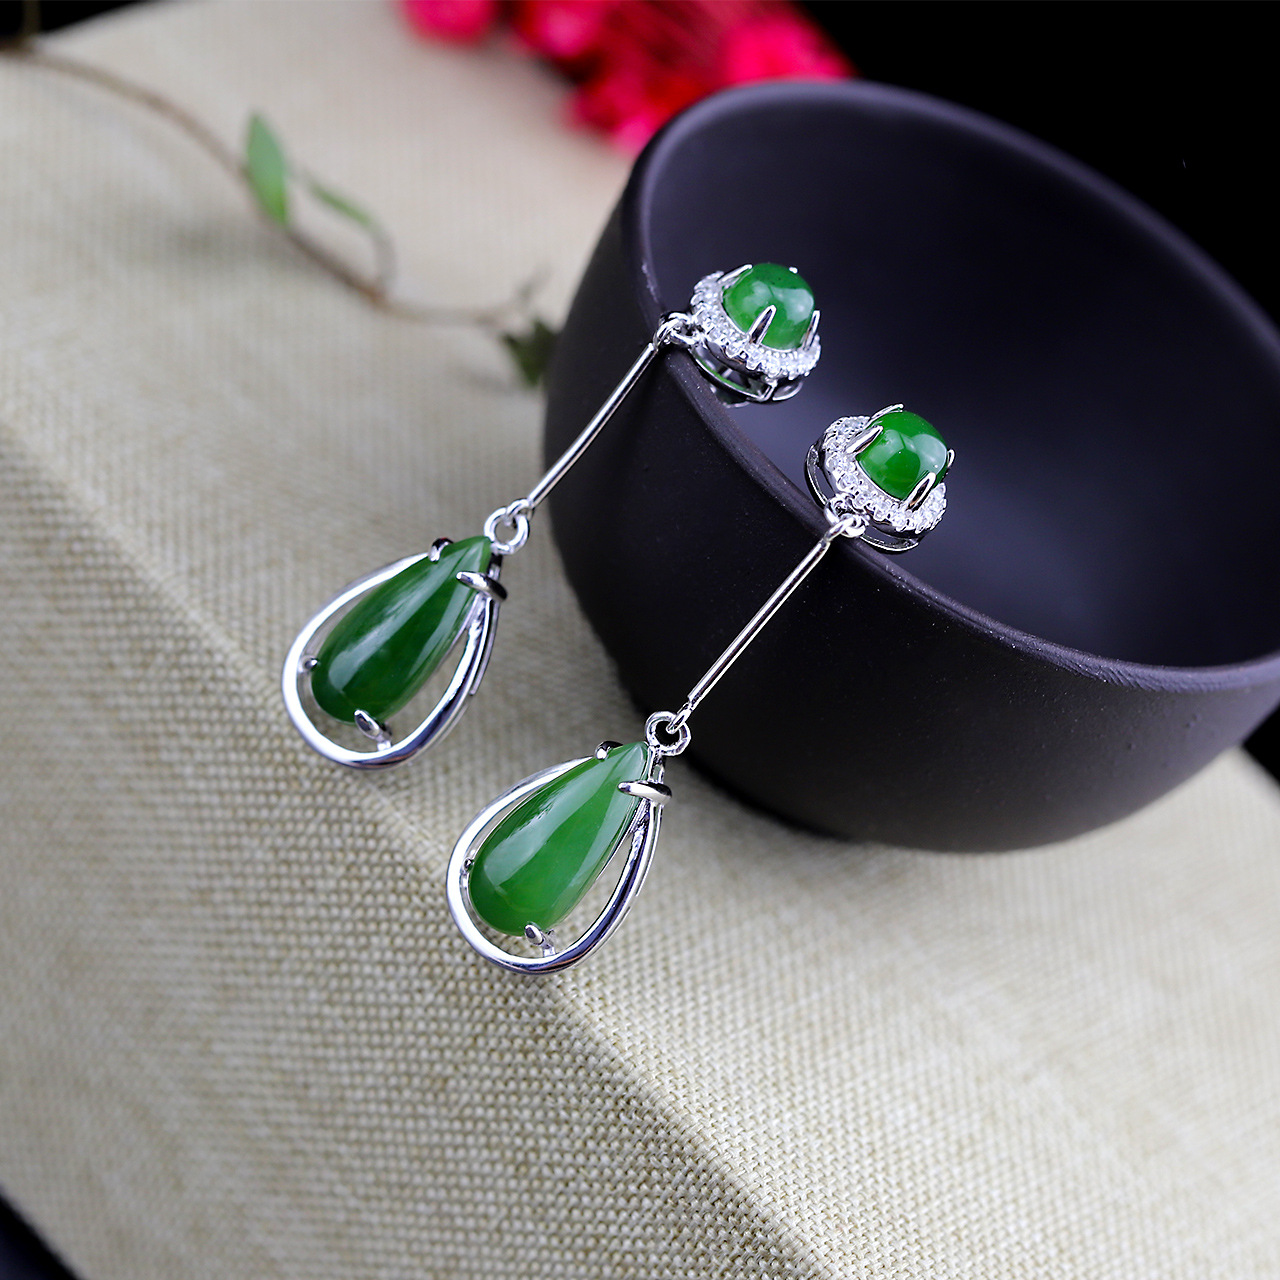 Character Silver Product S925 Pure Silver Jewelry Fashion Earrings Wholesale Ms Droplets Hetian Jade Earrings the character of silver s925 silver jewelry fashion exquisite lady earrings blue sandstone section